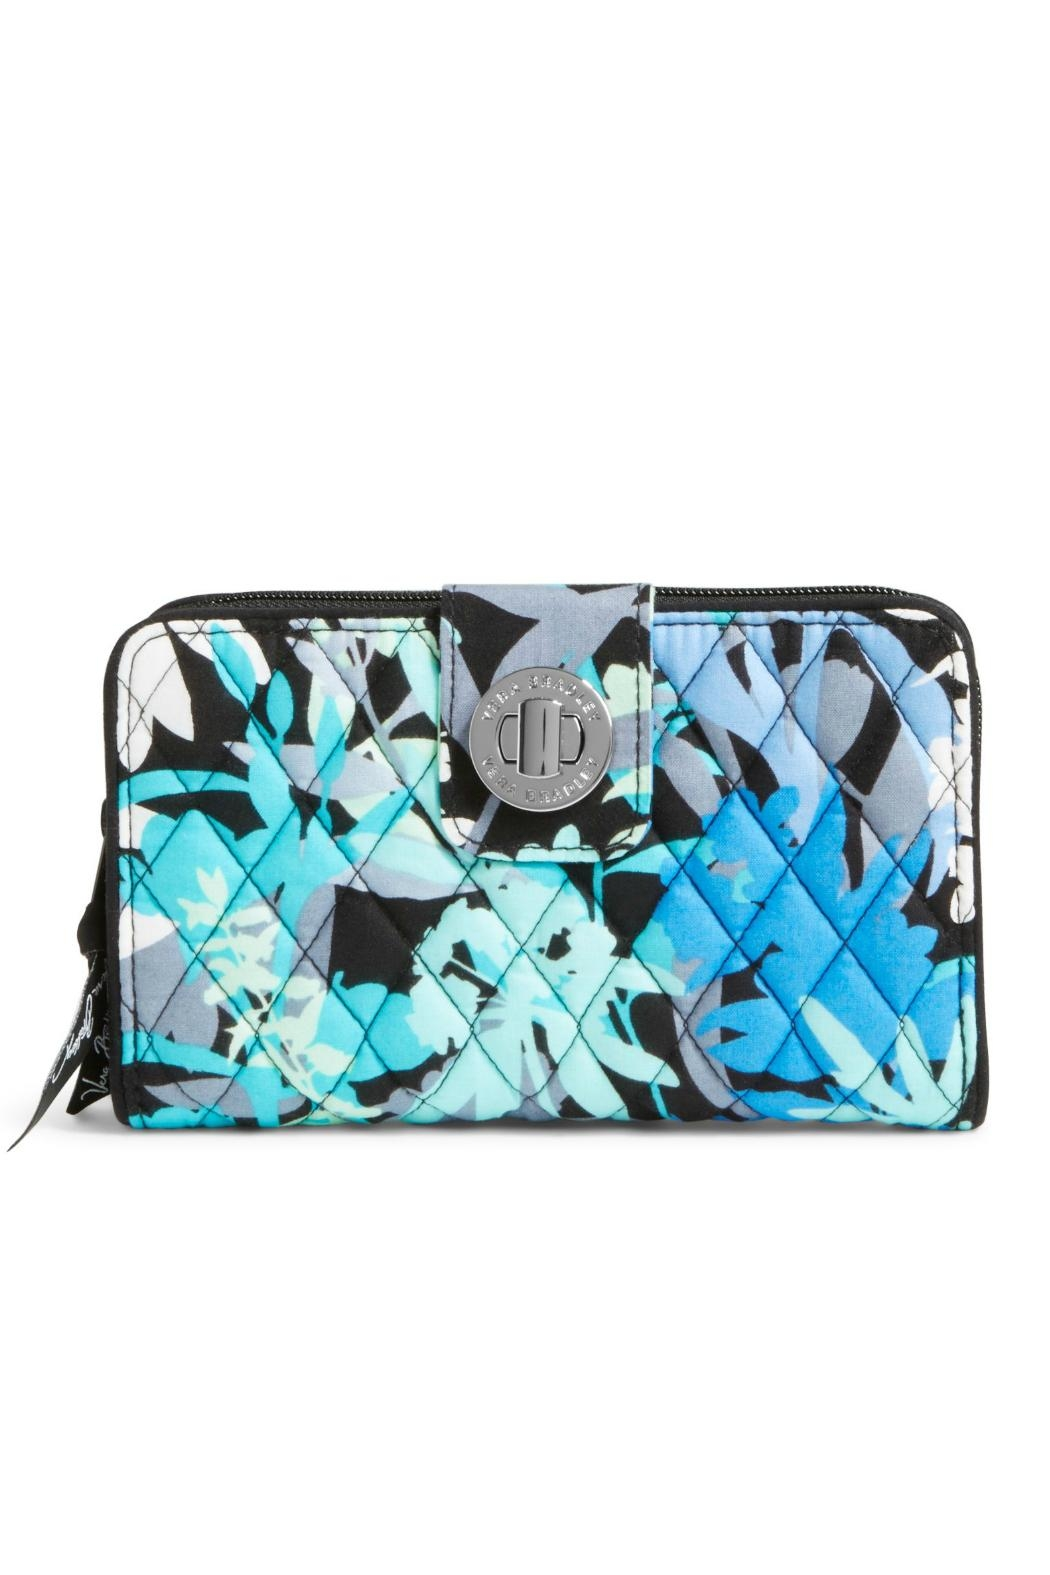 Vera Bradley Camofloral Turnlock Wallet From Kentucky By Mimi S